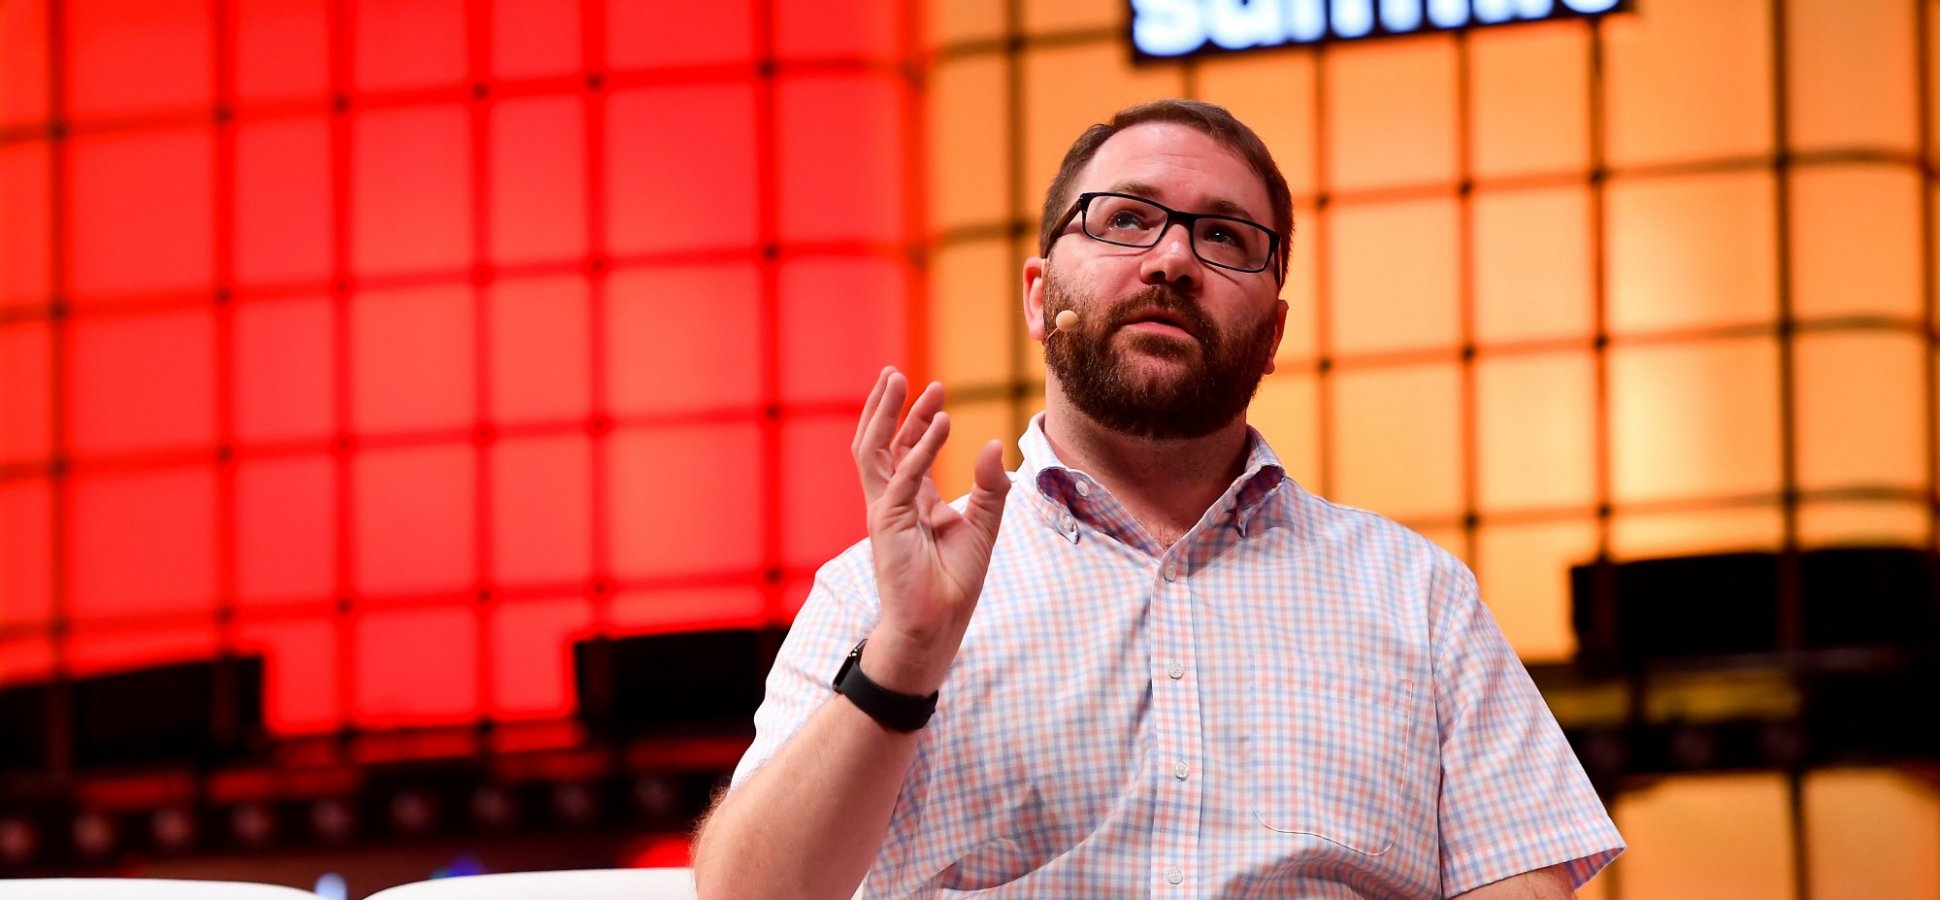 What Does the Future Hold for Workplace Culture? Here's What Slack's Co-Founder Thinks